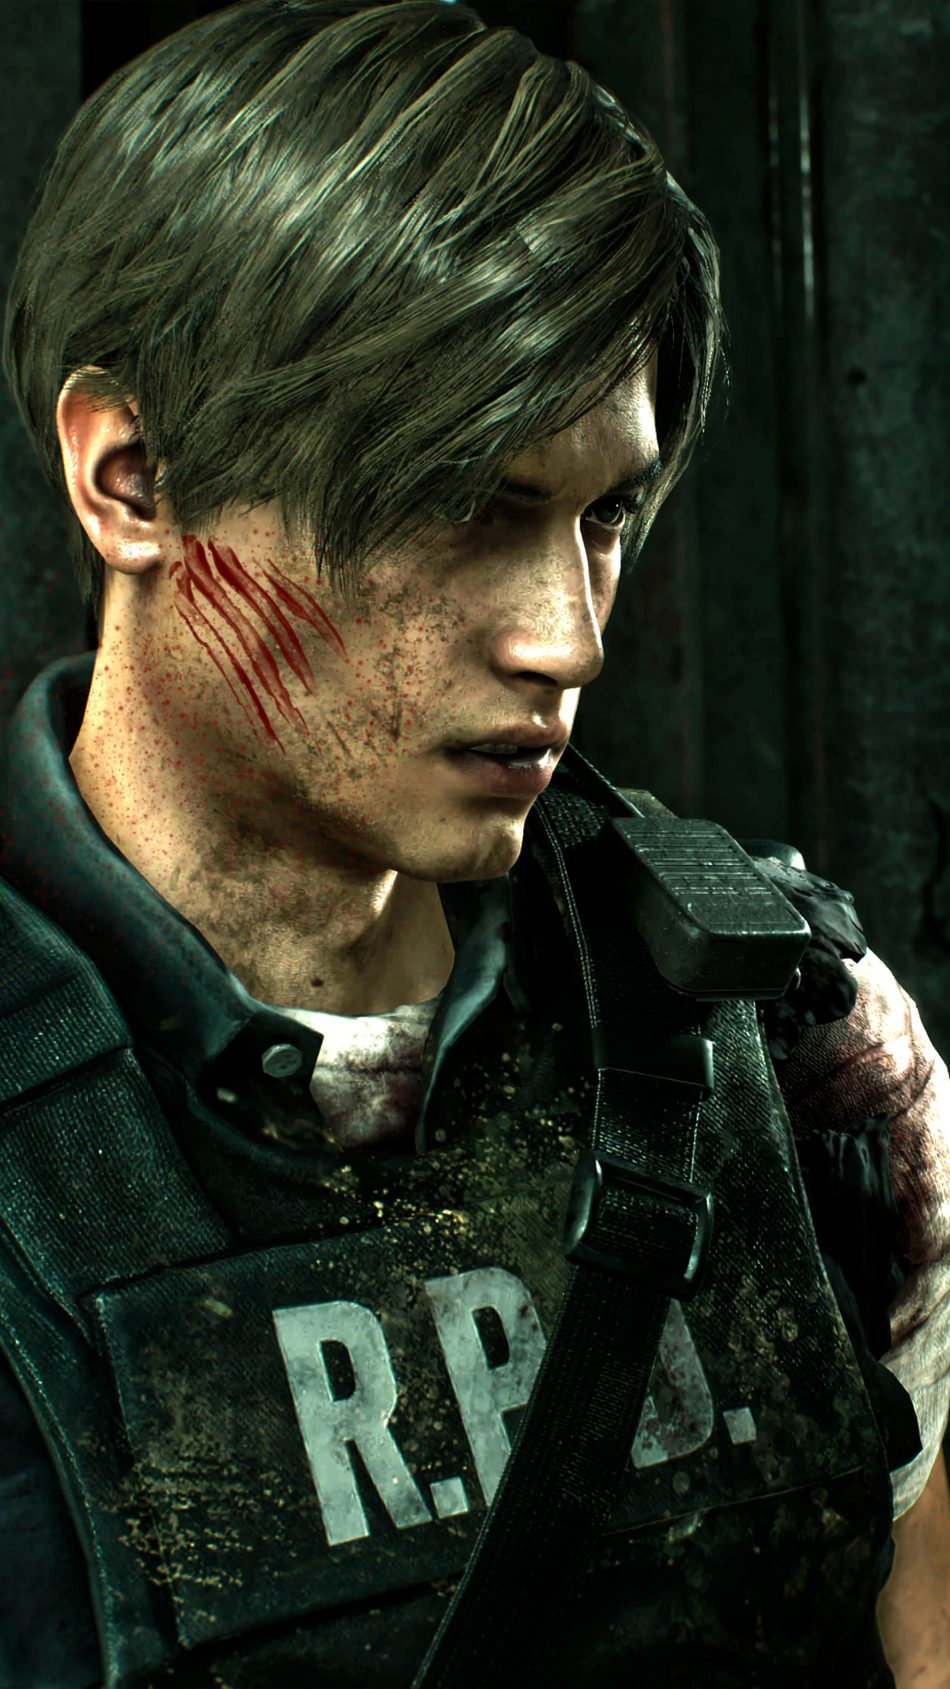 Download Leon S  Kennedy RPD Resident Evil 2 Free Pure 4K